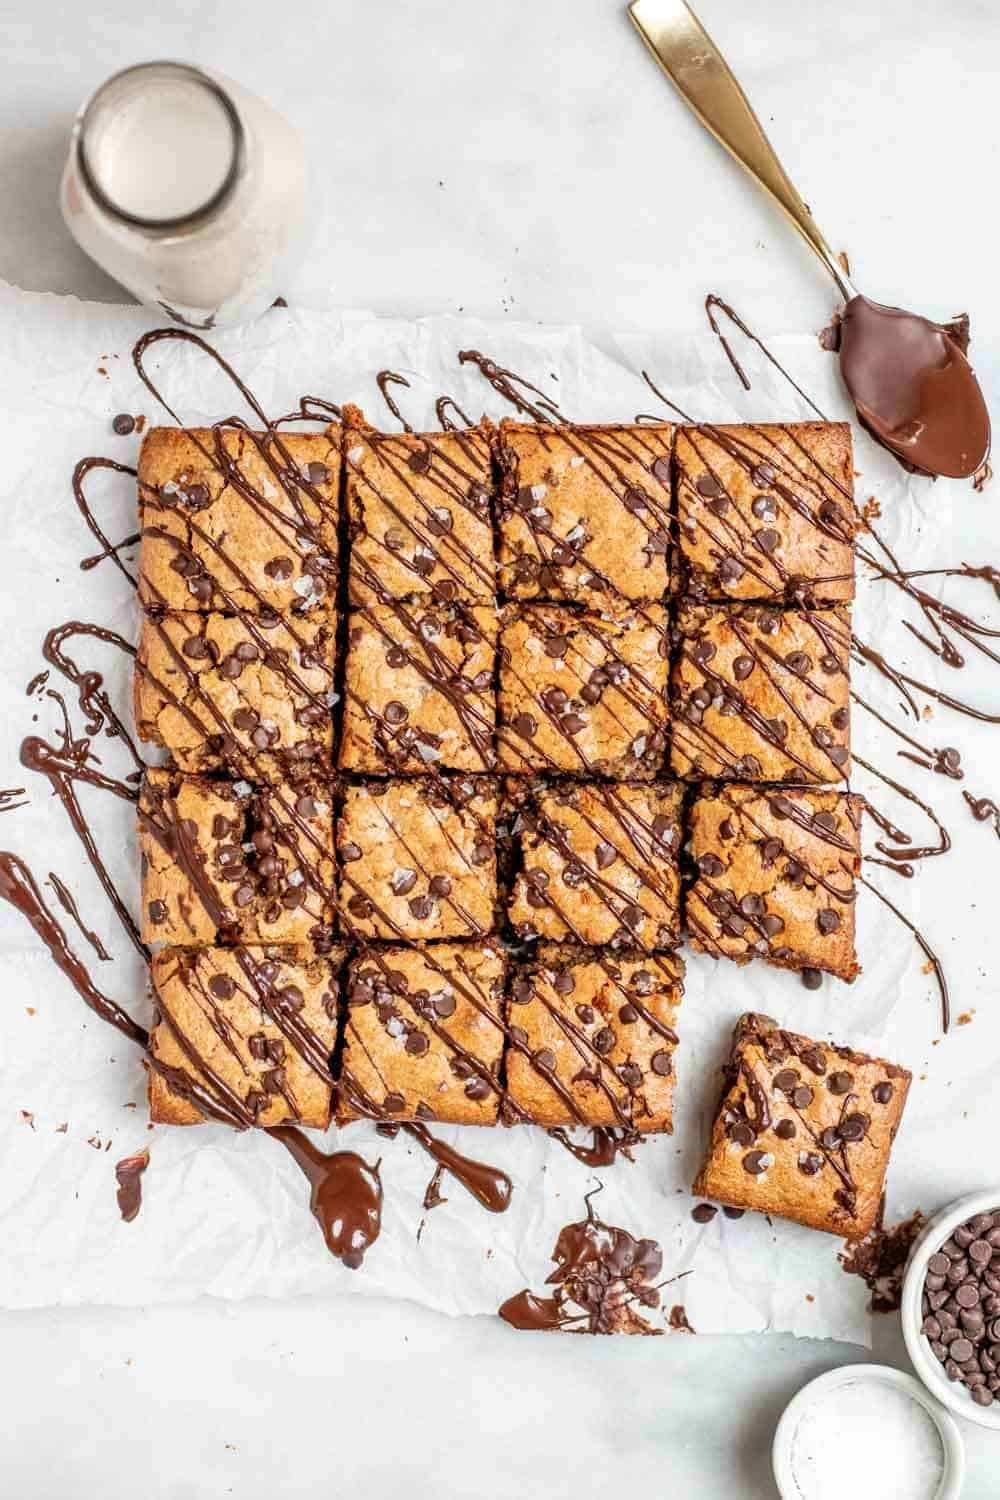 Gluten free blondies with chocolate drizzled on top.